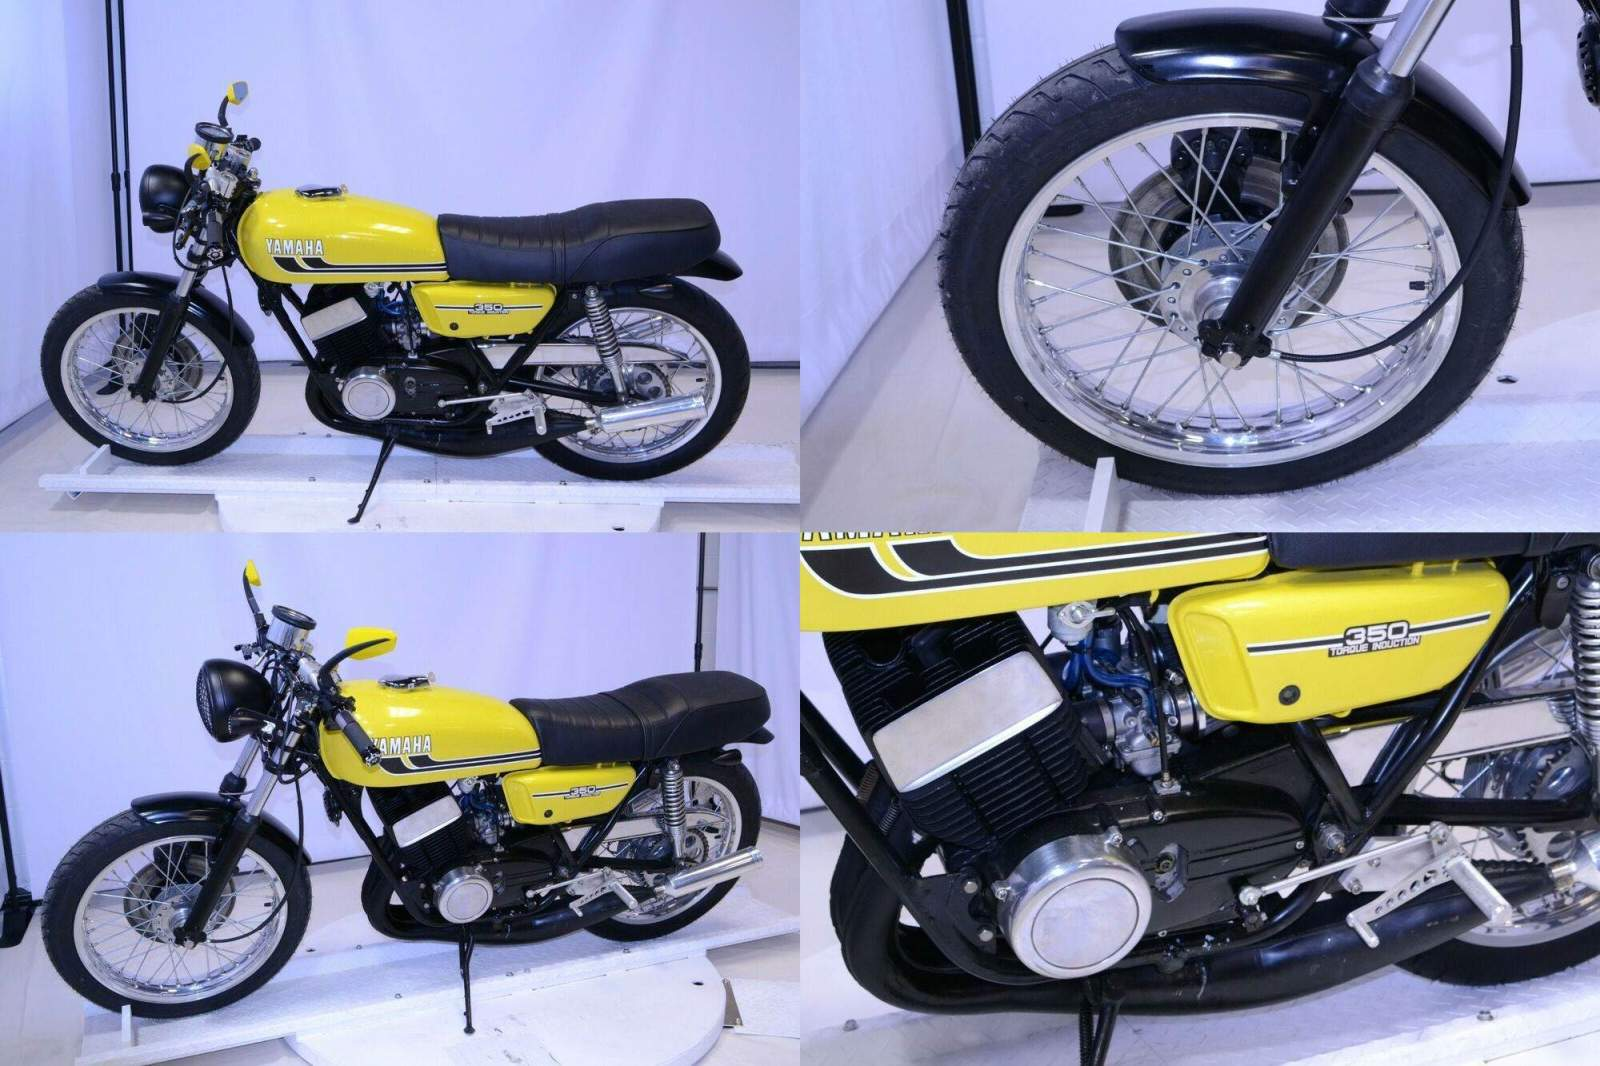 1975 Yamaha Other  used for sale craigslist